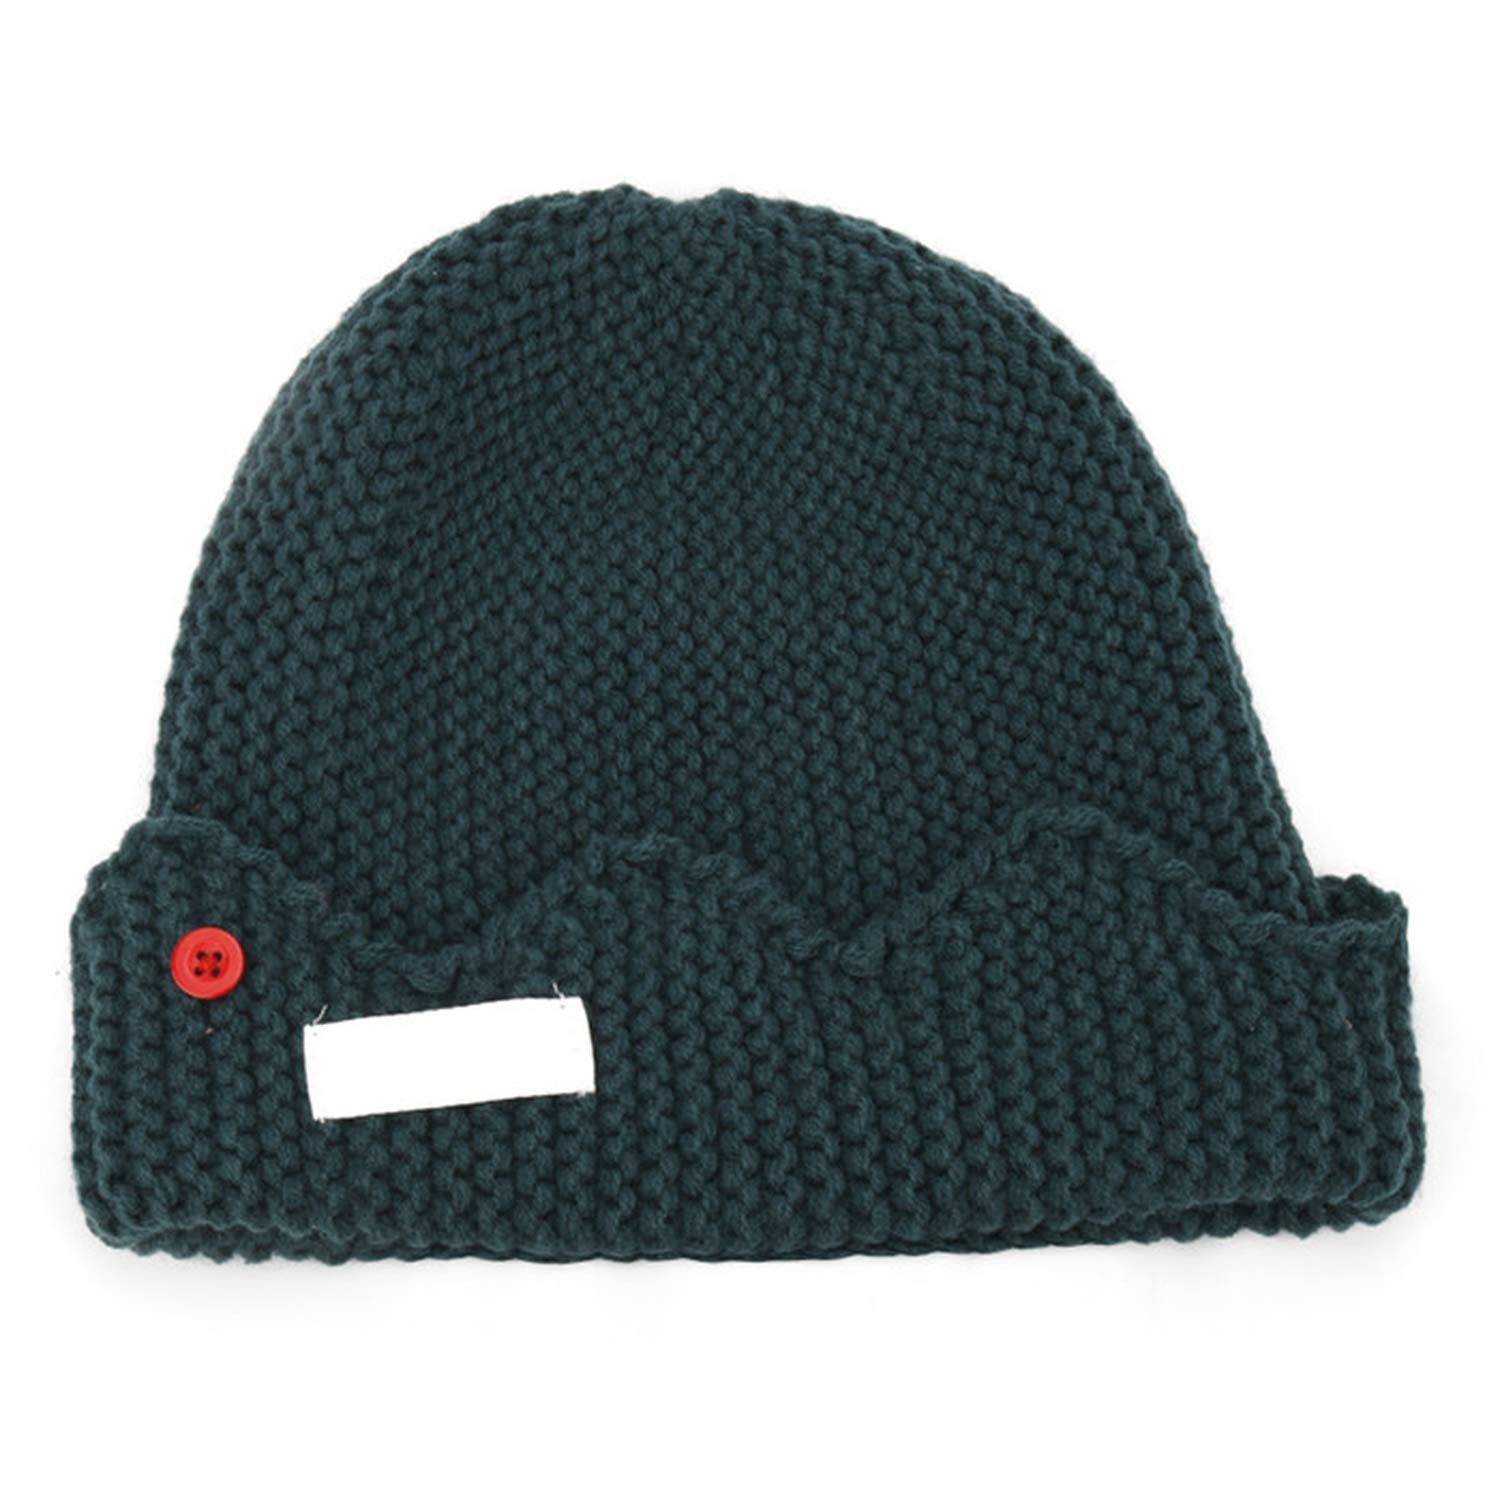 MingDe Sports Jughead Jones Riverdale Beanie Hat Exclusive Crown Knitted  Cap at Amazon Men s Clothing store  ff558964671